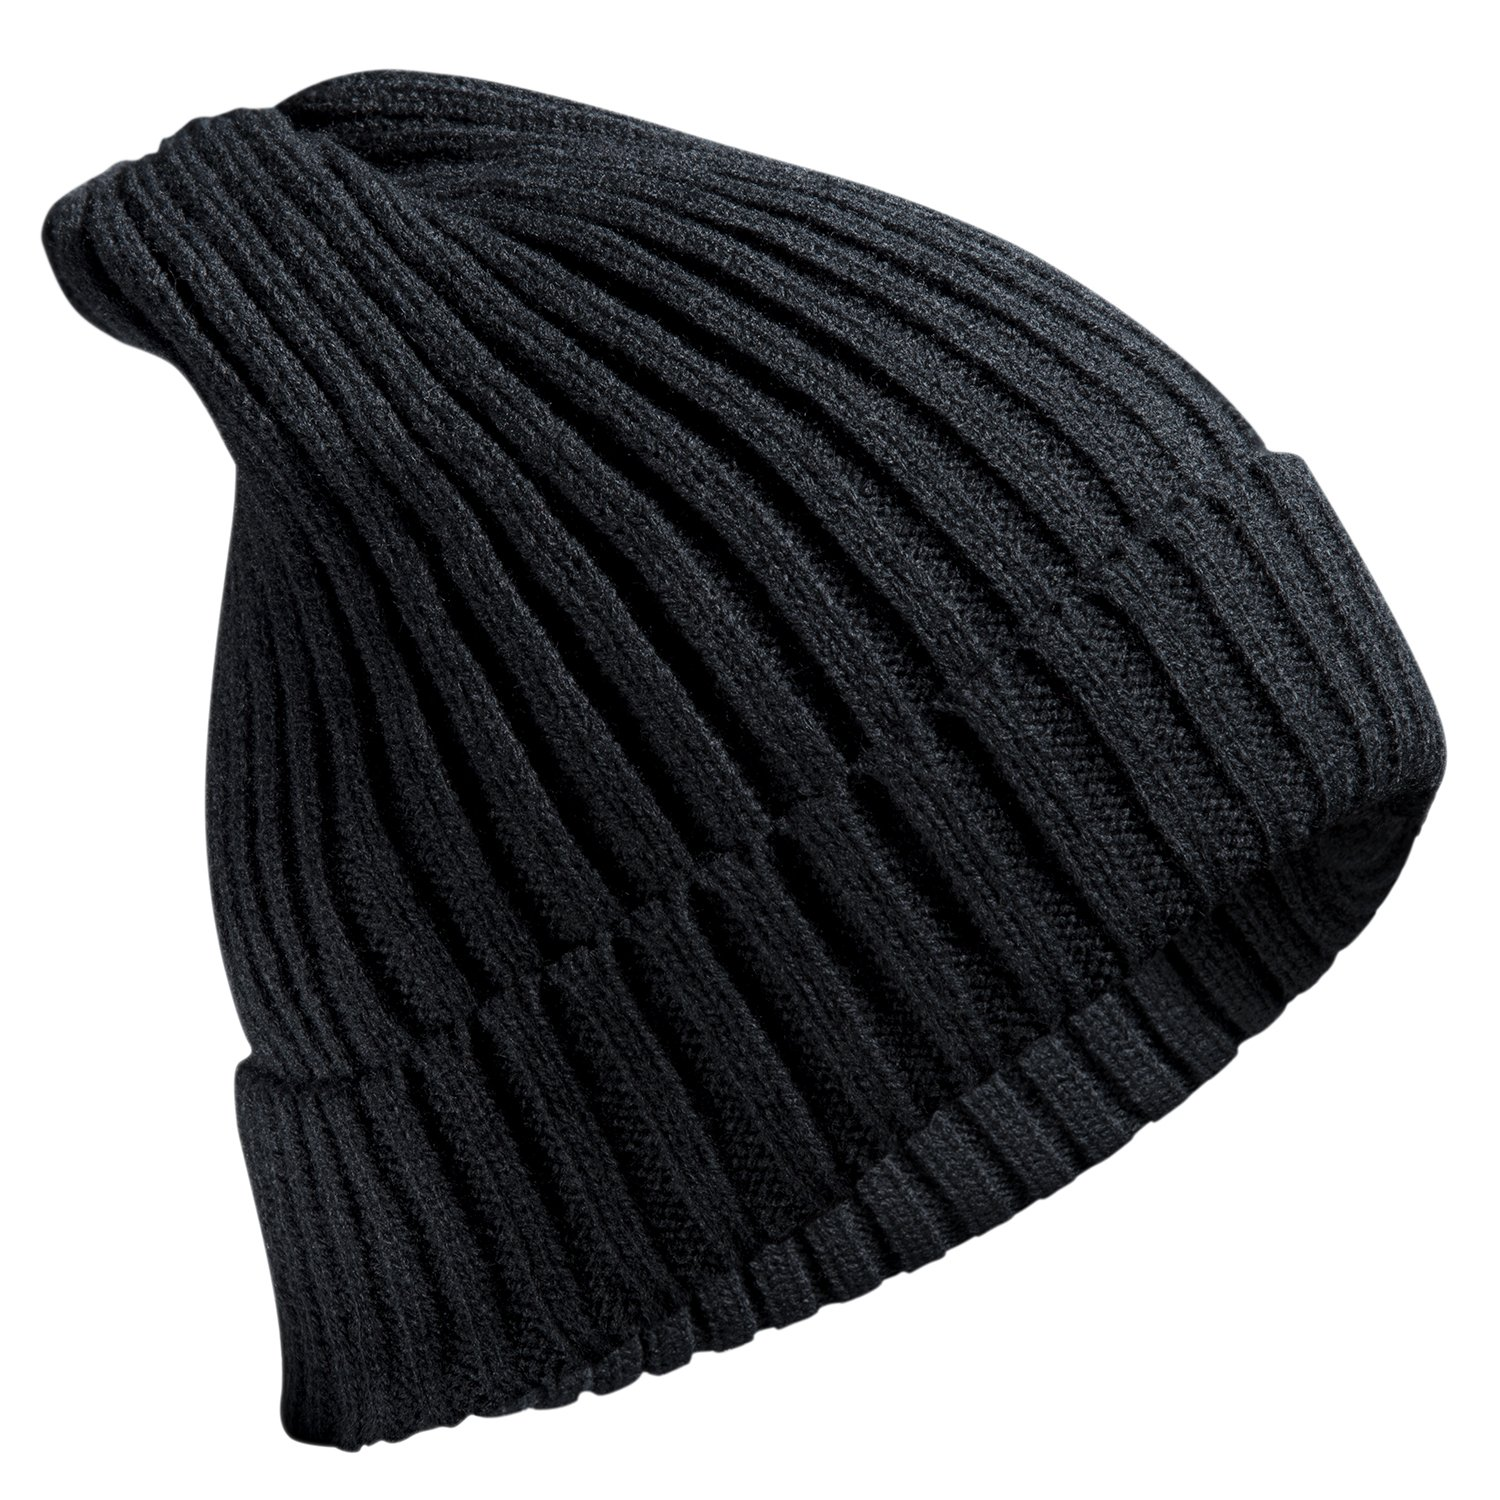 FREETOO Beanie Hat Knit Beanie Winter Black Knitted Beanie Hat Keeps Warm and Stylish for Unisex Men Women for Winter Ski Outdoor